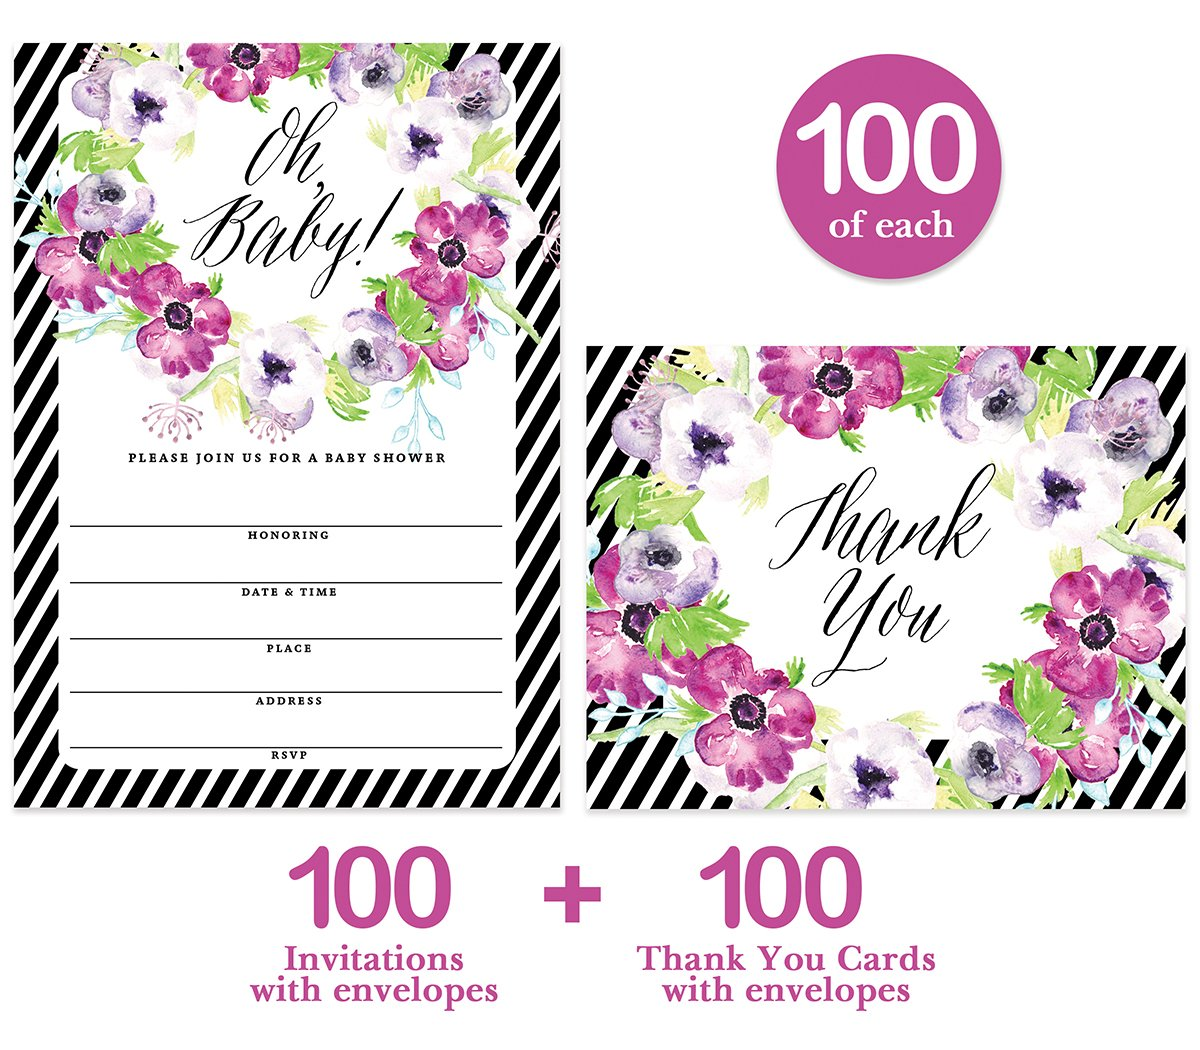 Baby Shower Invitations ( 100 ) & Matching Thank You Cards ( 100 ), Envelopes Included, Large Gathering Mom-to-Be Party Boy Girl Neutral Fill-in Guest Invites & Folded Thank You Notes Best Value Set by Digibuddha (Image #2)